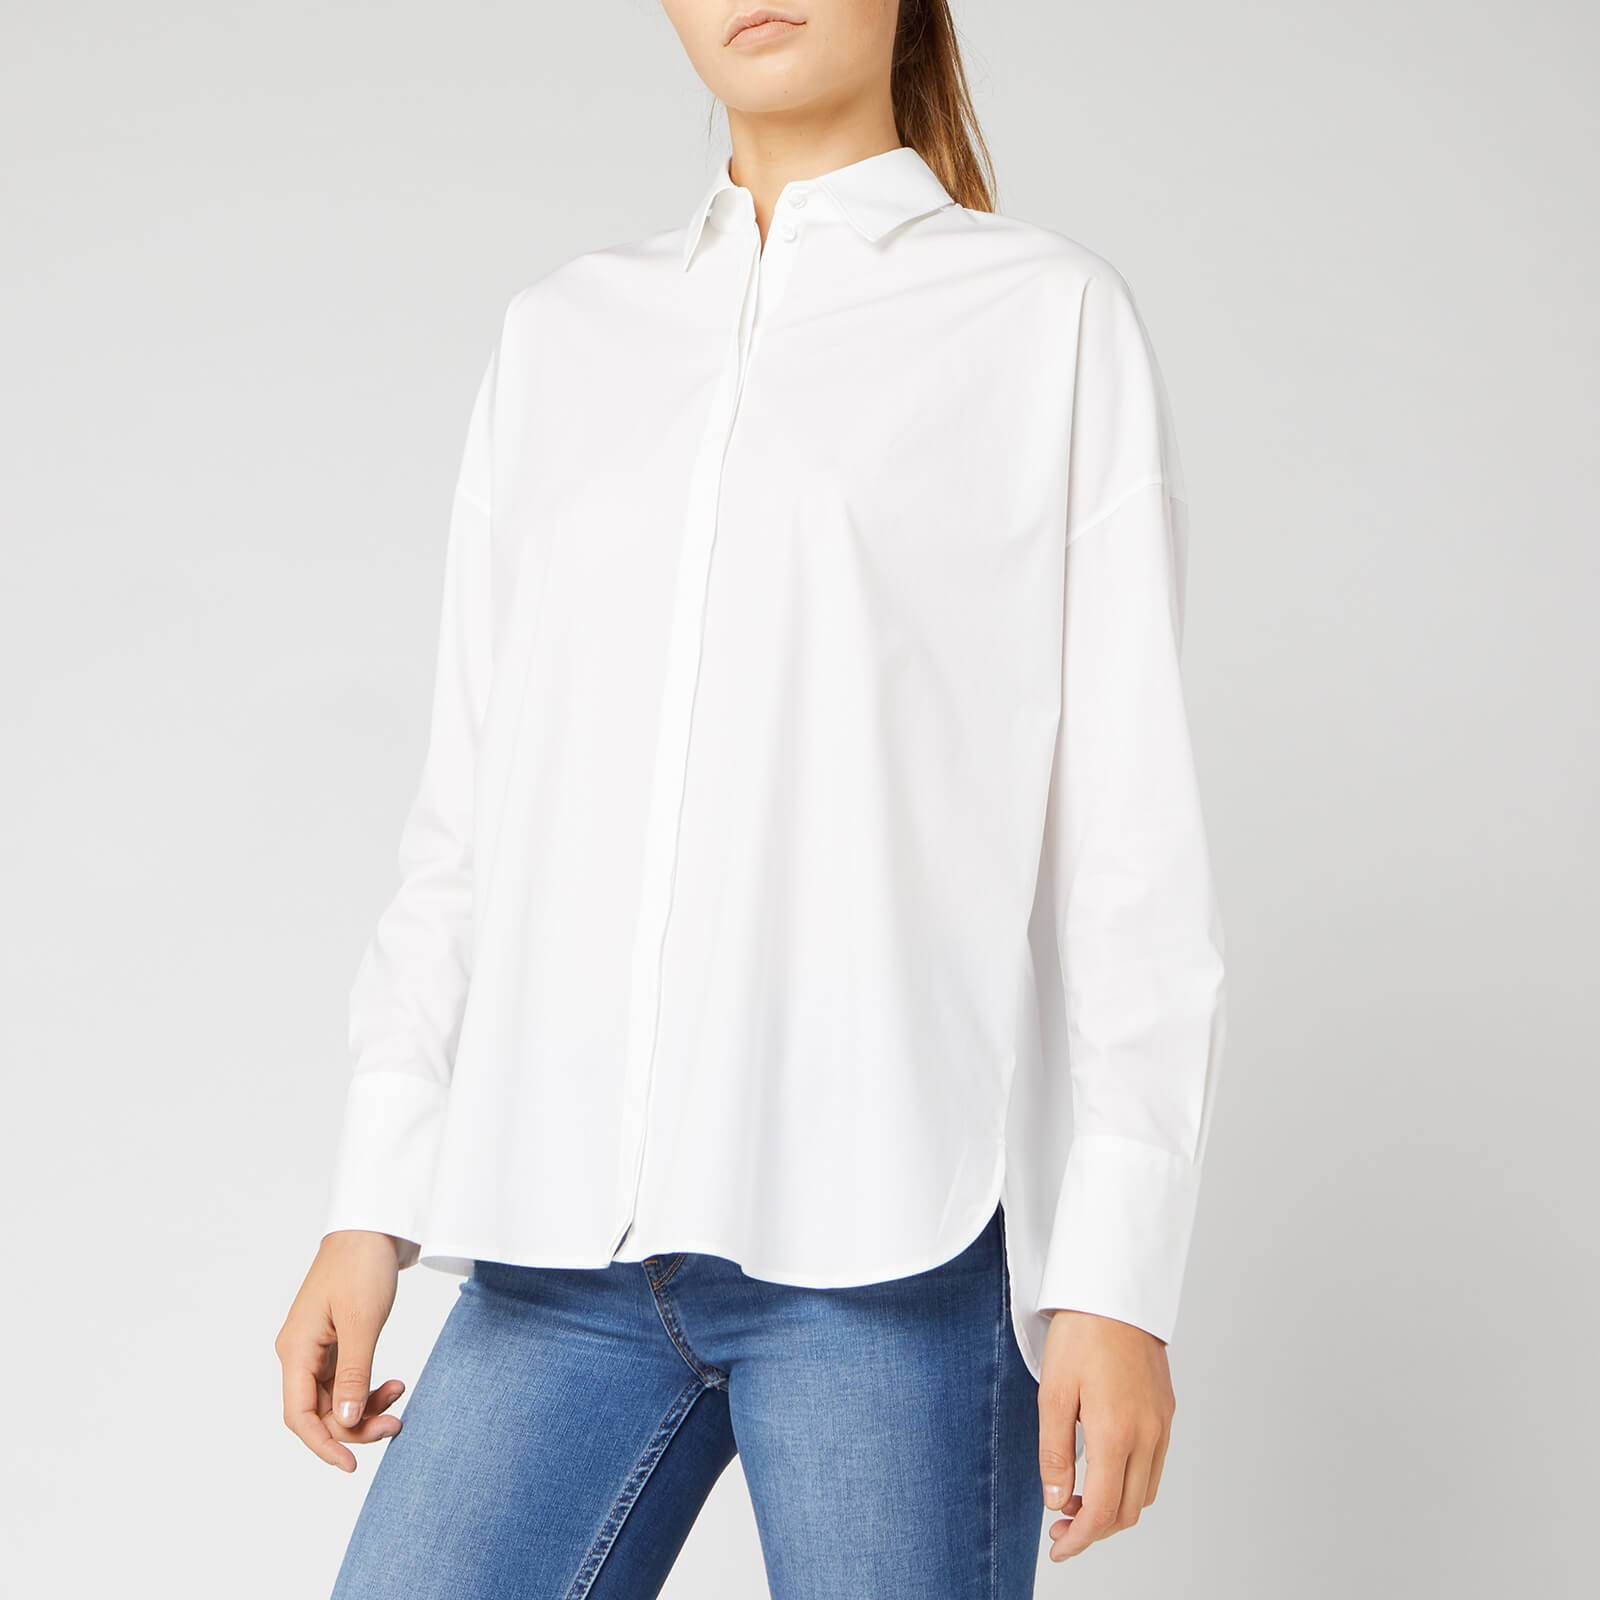 Hugo Boss Women's Elumia Shirt - White - S - White